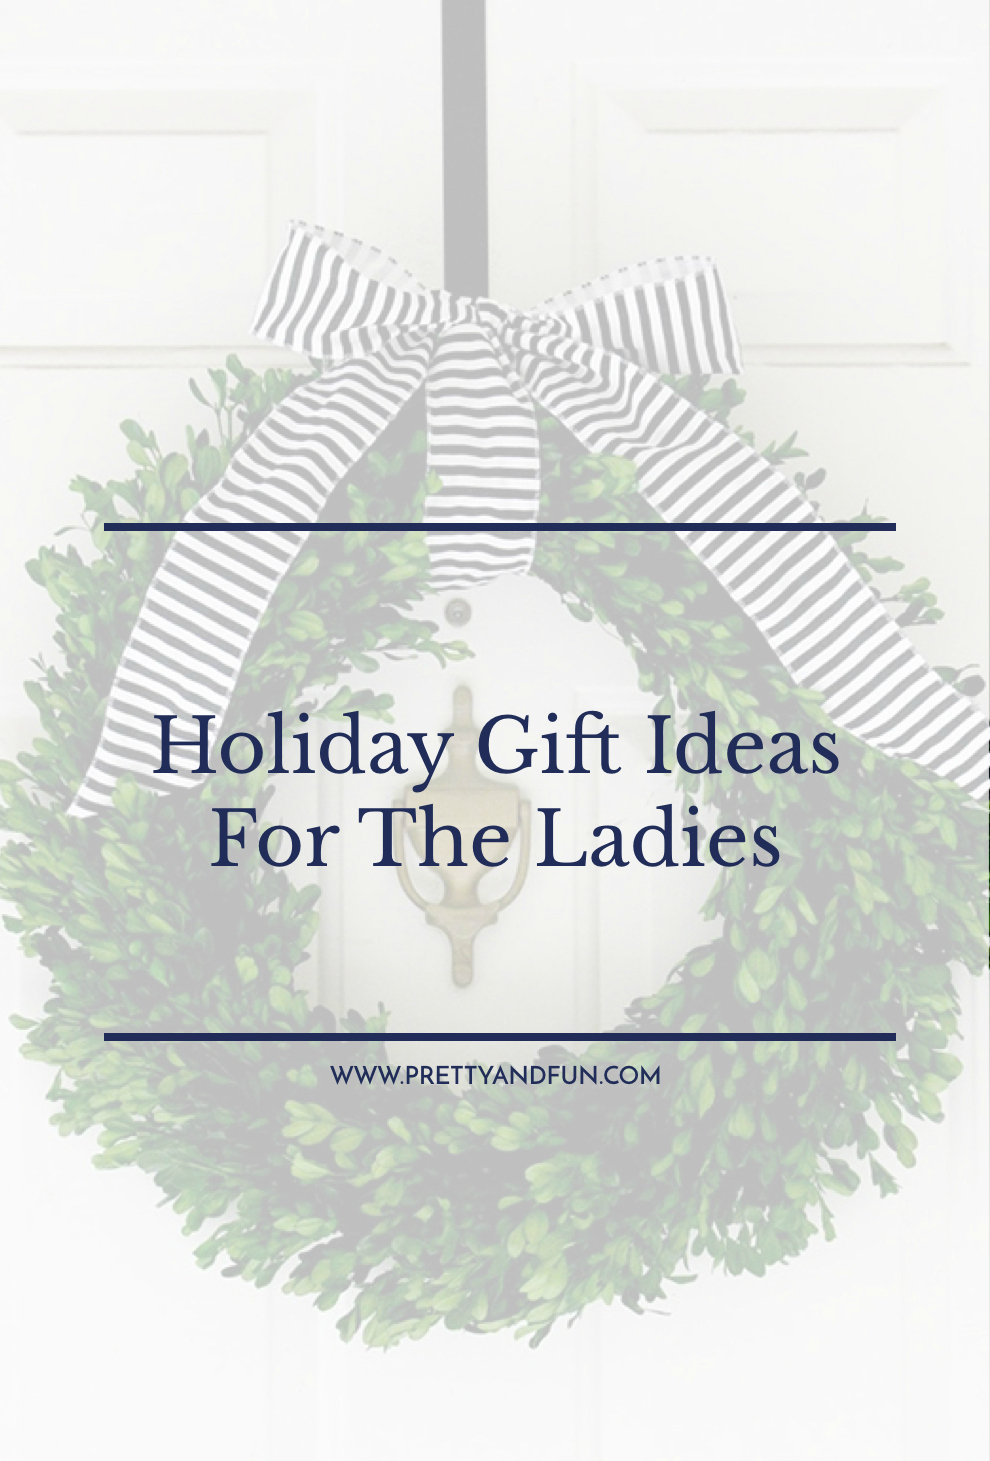 The Best Holiday Gift Ideas for the Women in Your Life.